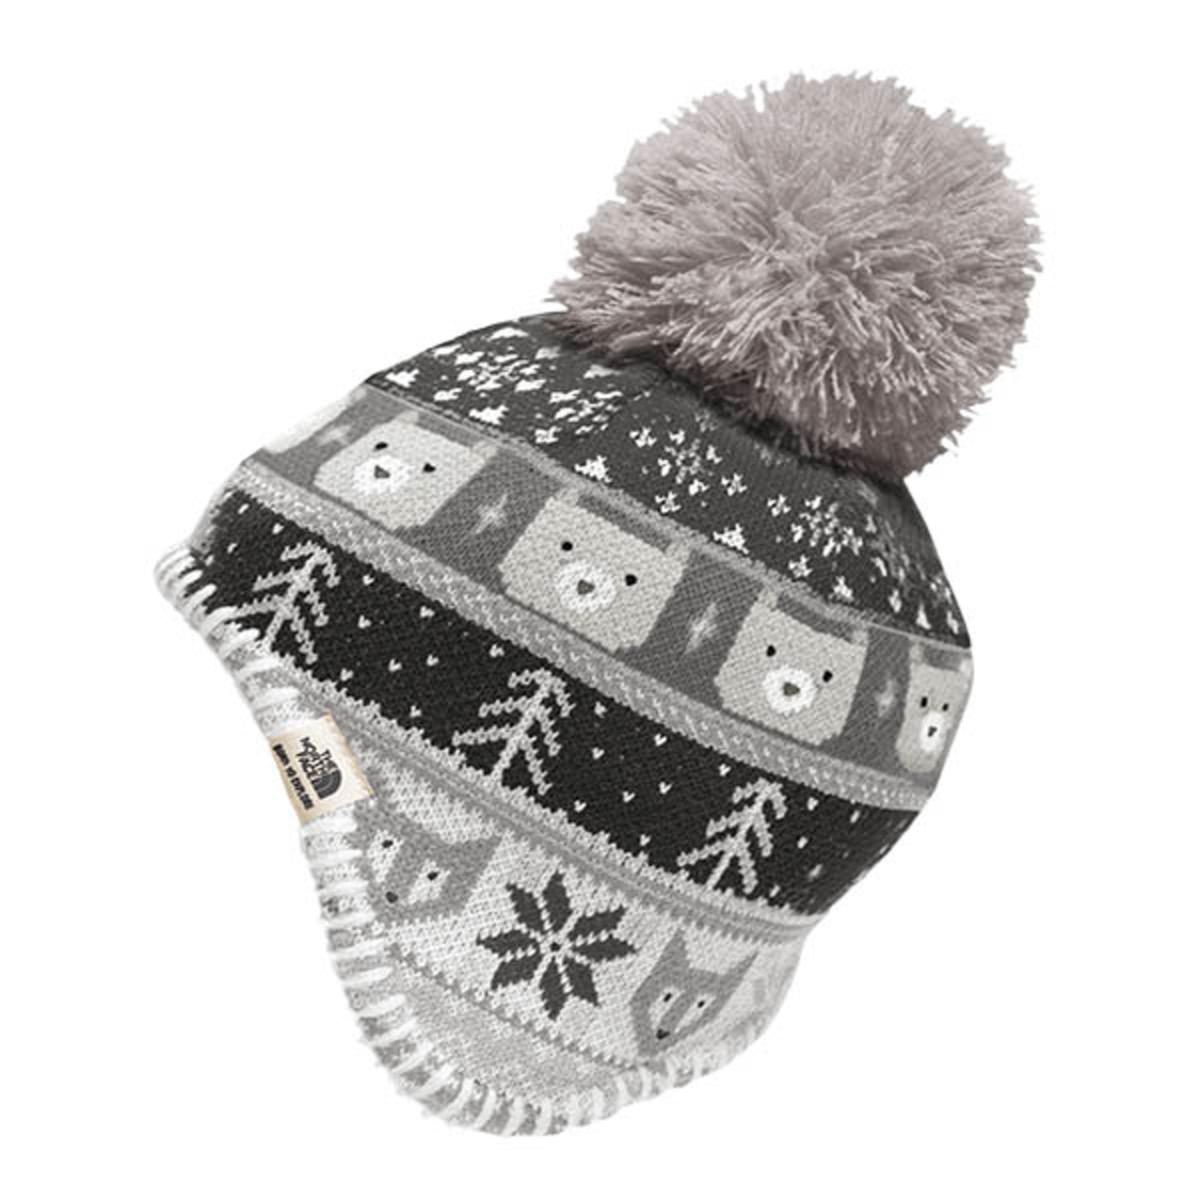 The North Face Baby Faroe Beanie - The Warming Store 9f0364caa02